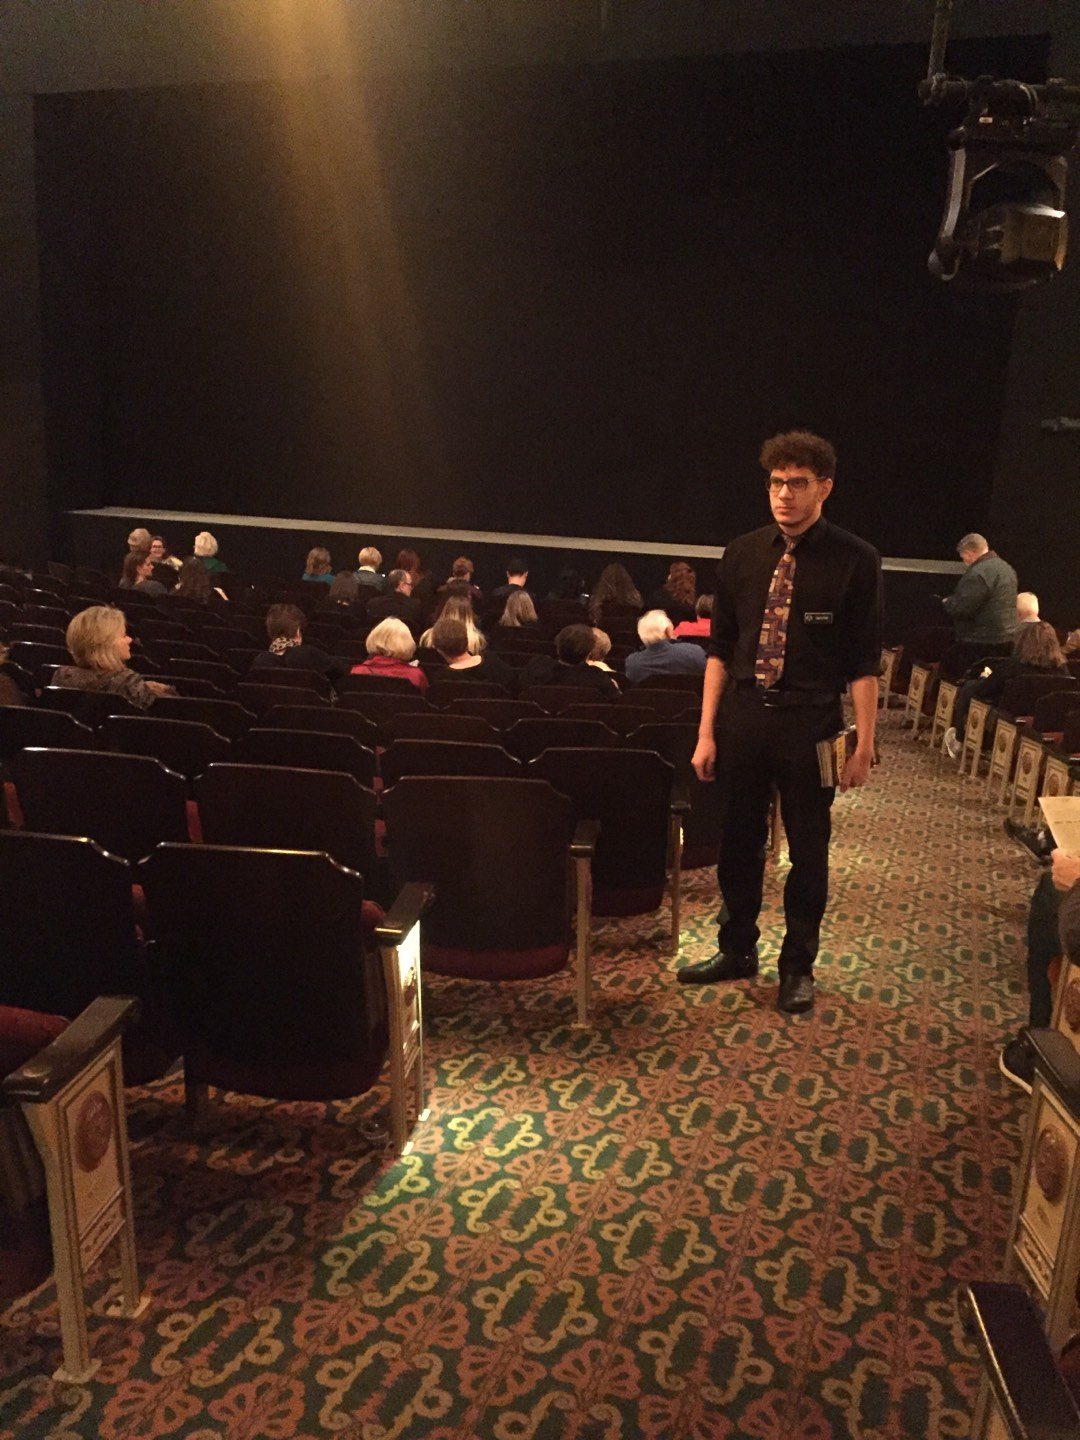 Bernard B. Jacobs Theatre Section Orchestra R Row O Seat 2